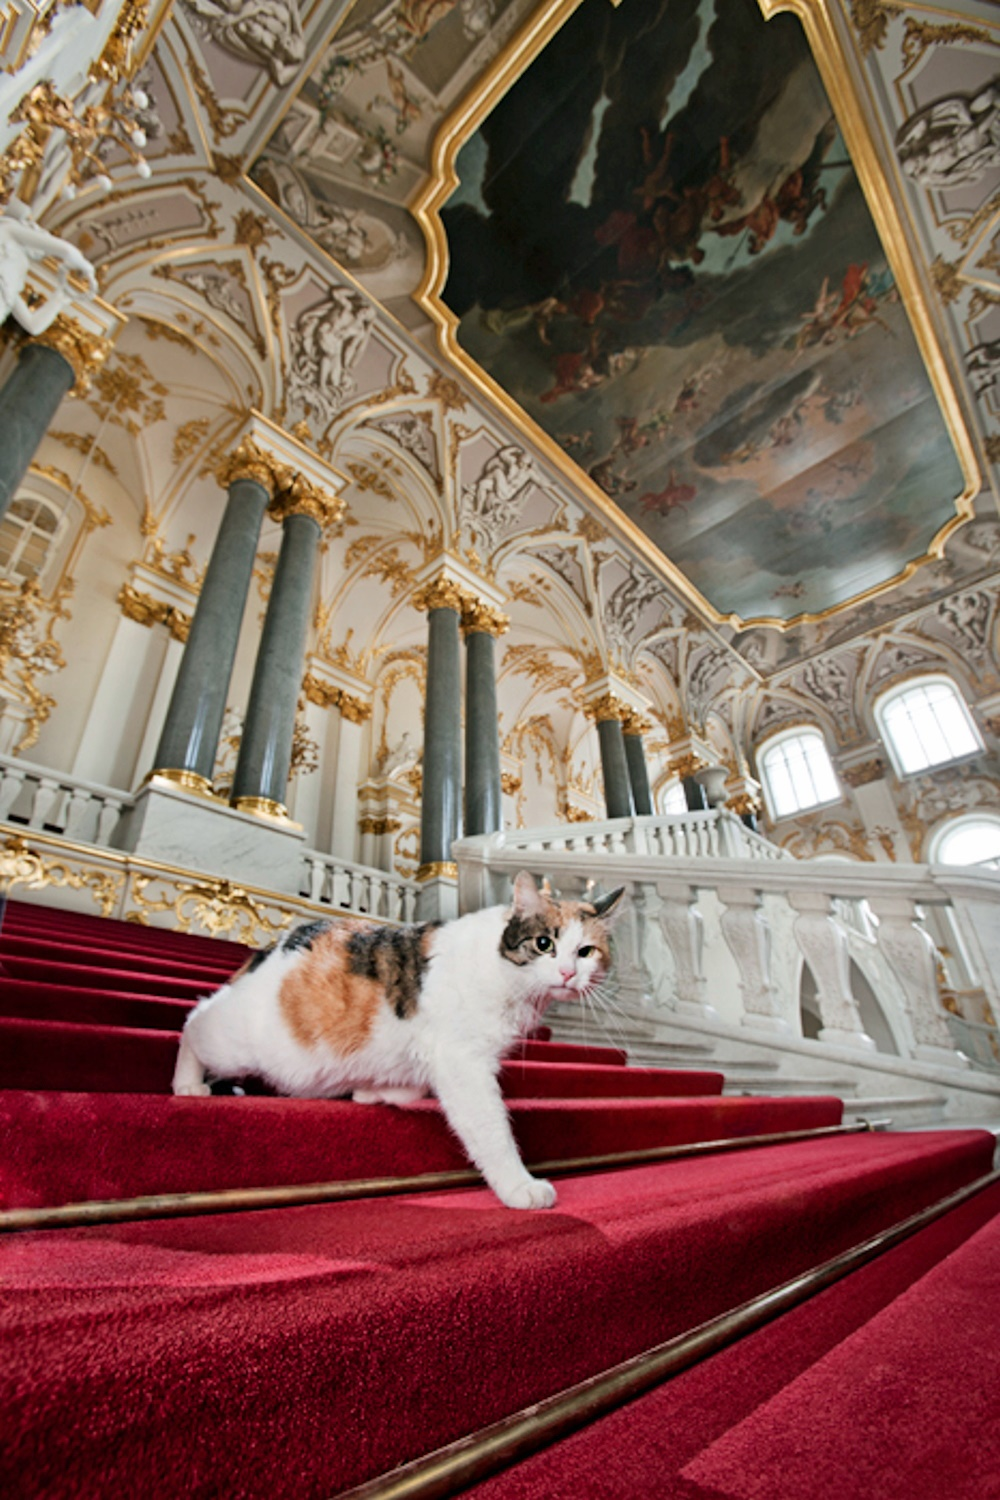 00 hermitage cats. russia. st petersburg. 05. 25.10.14